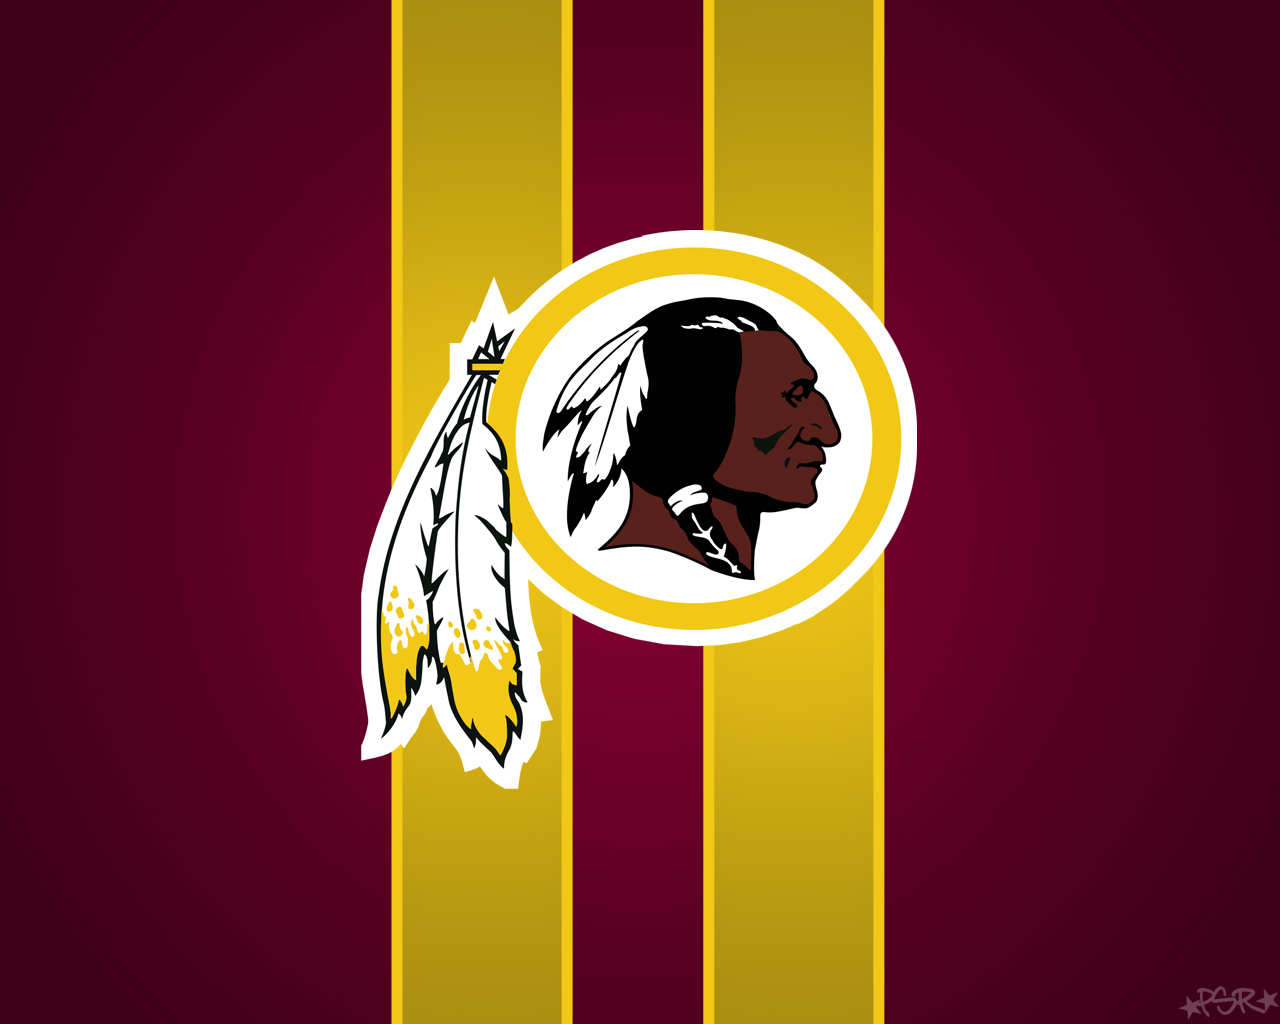 HD Washington Redskins 1280x Wallpaper 1280x1024